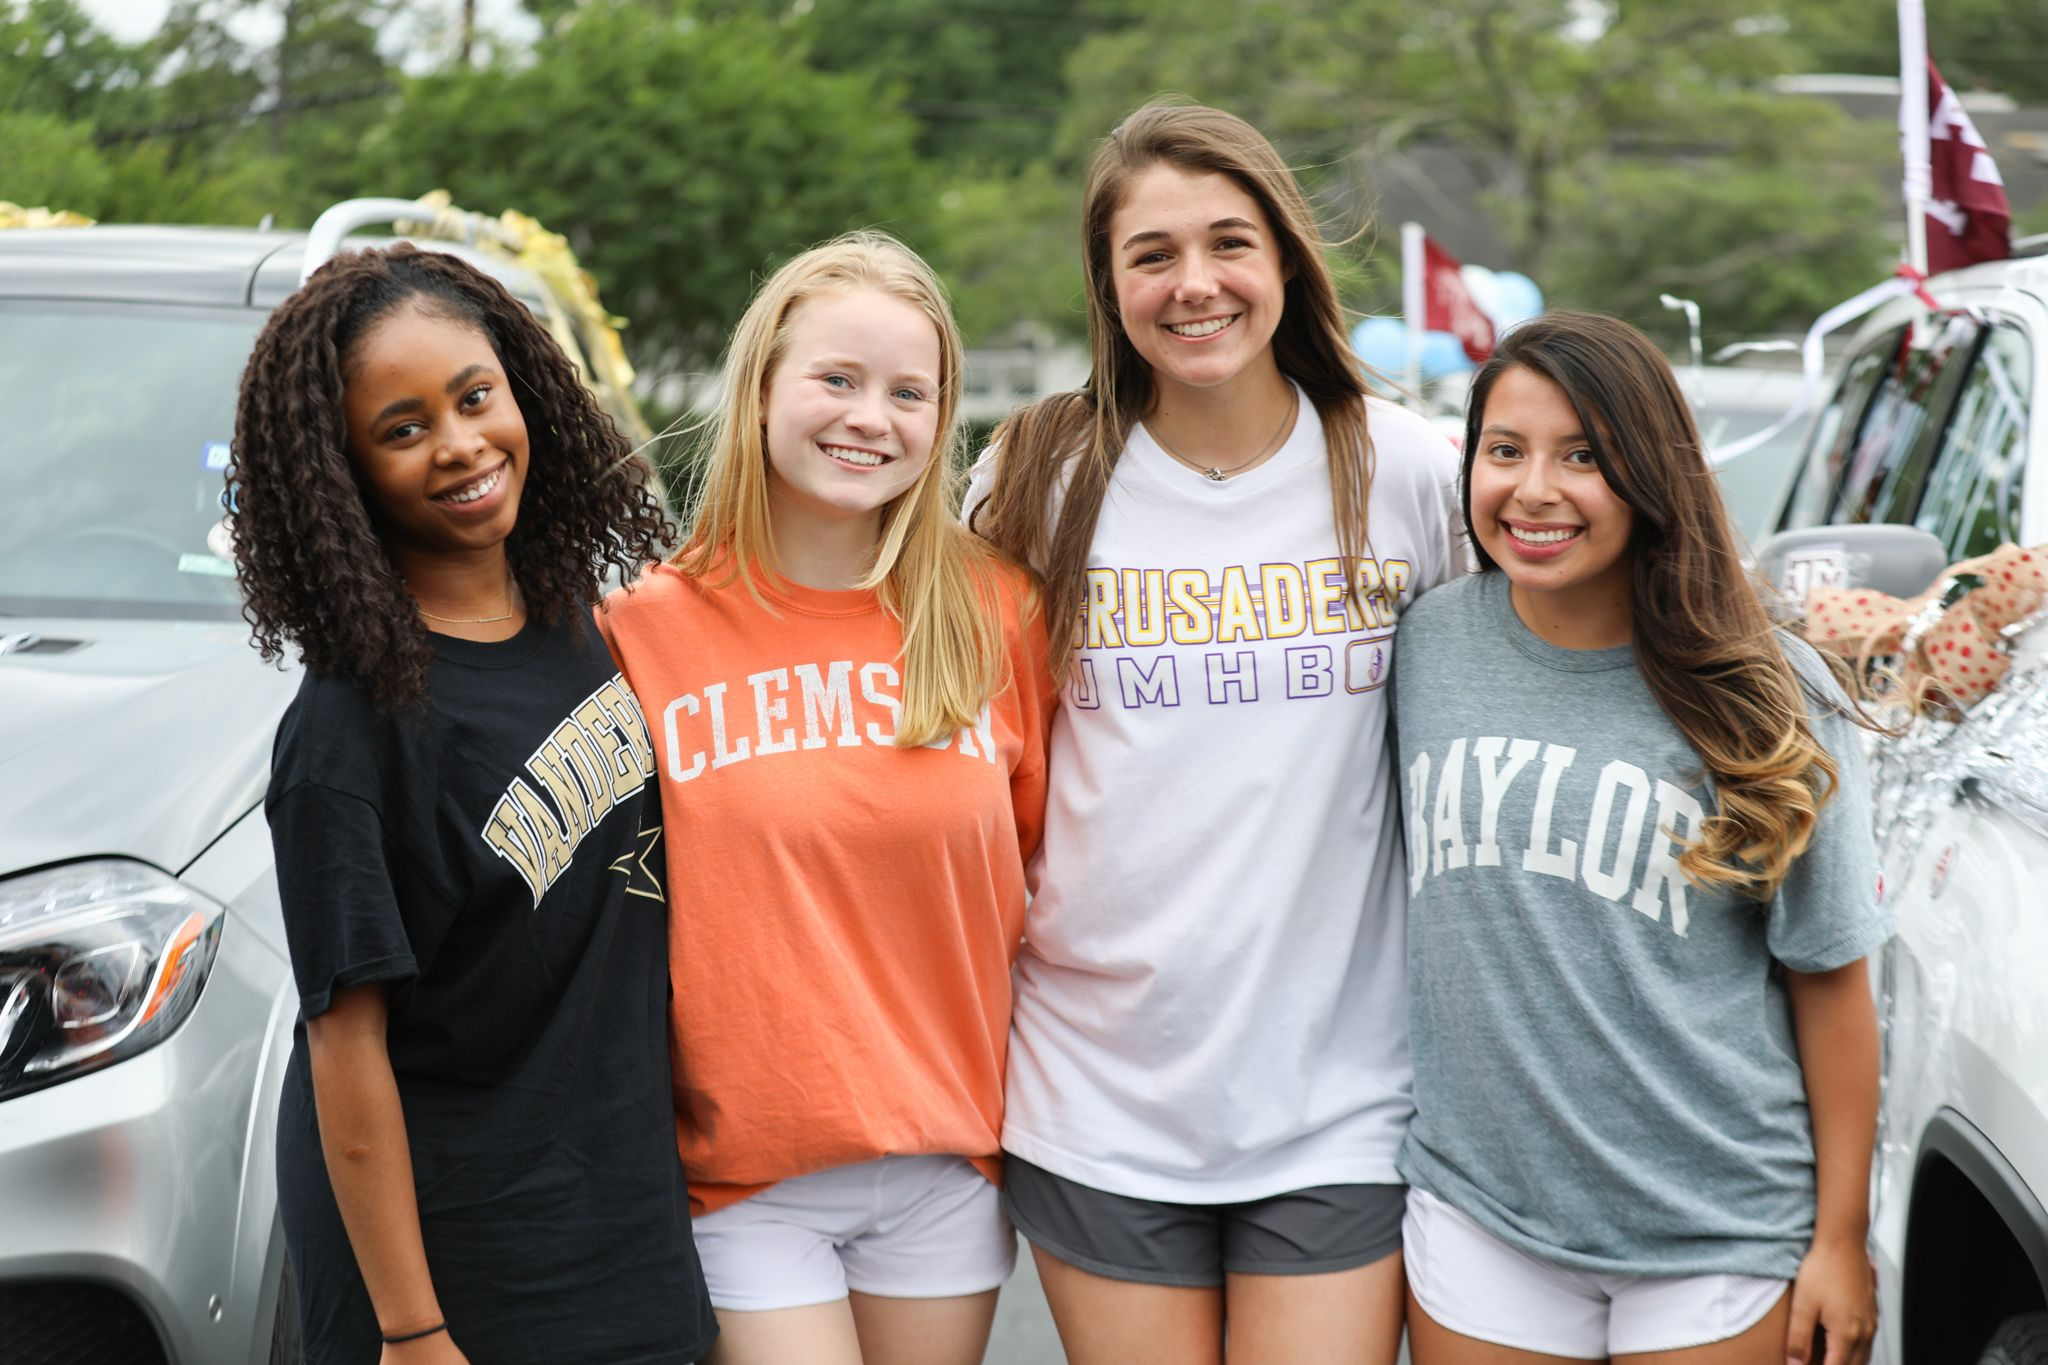 High school senior girls wearing their college t-shirts gathered together in the parking lot at Second Baptist School